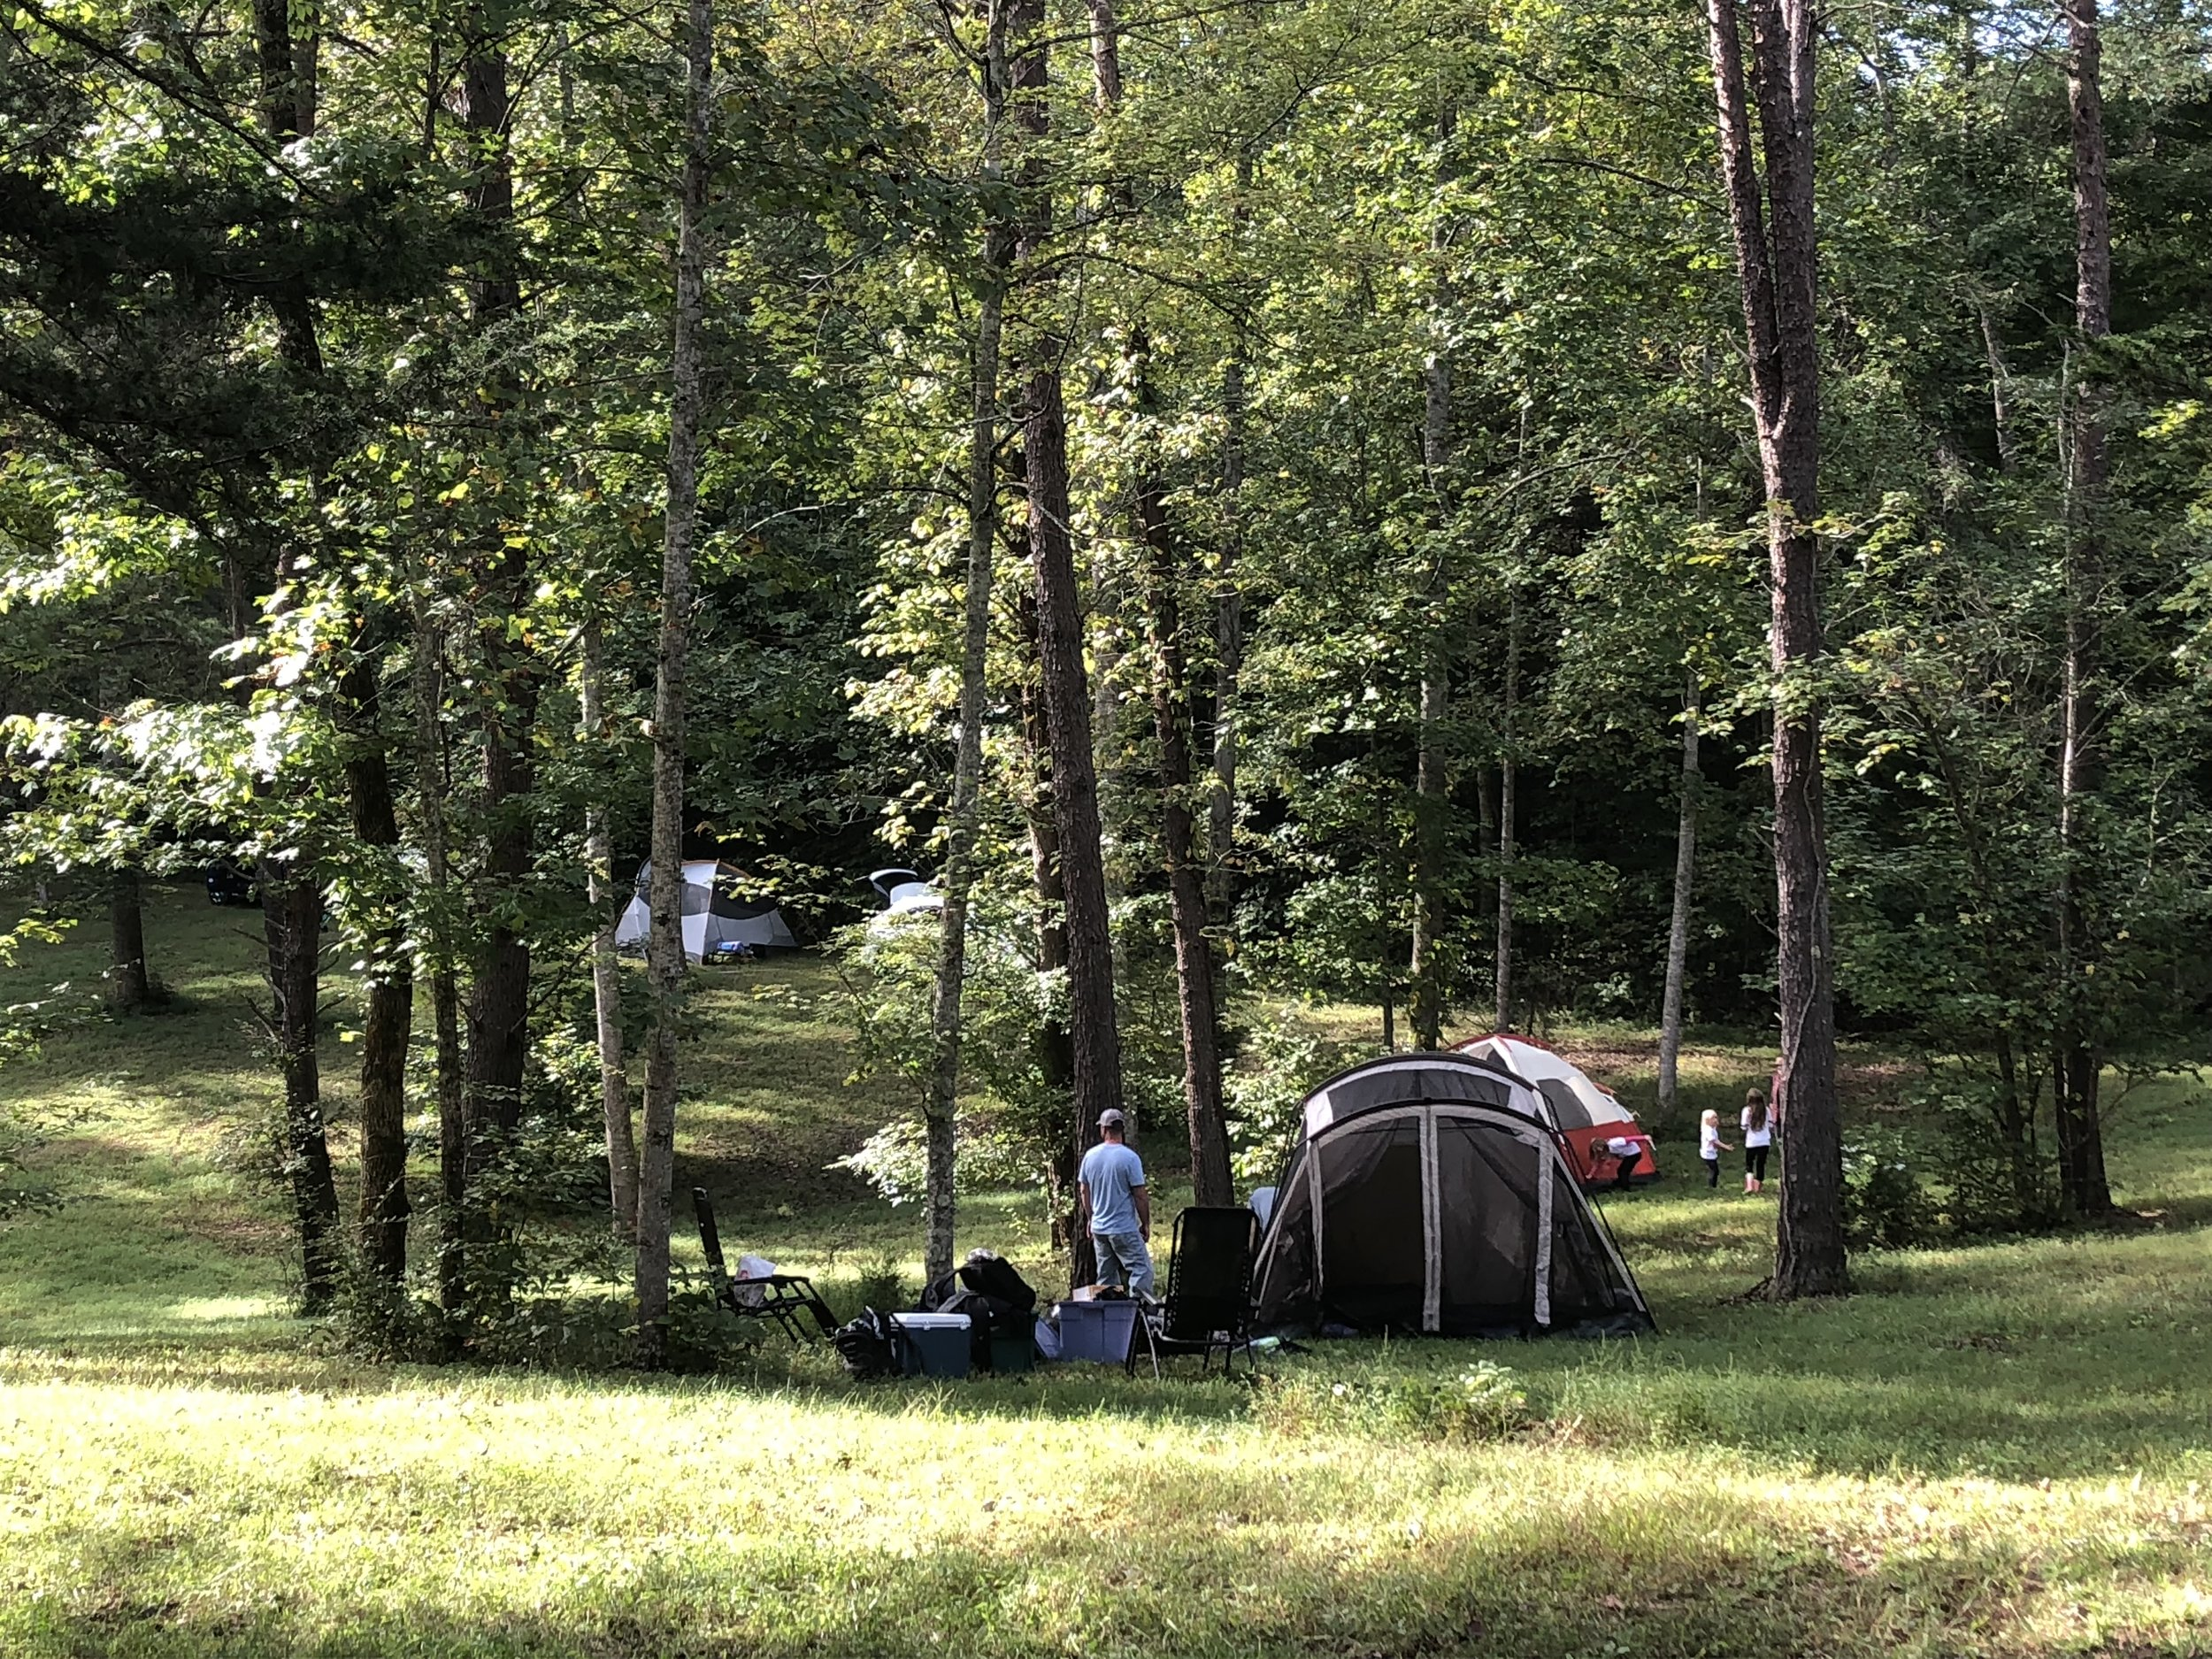 Copy of Tents Nestled in the Trees